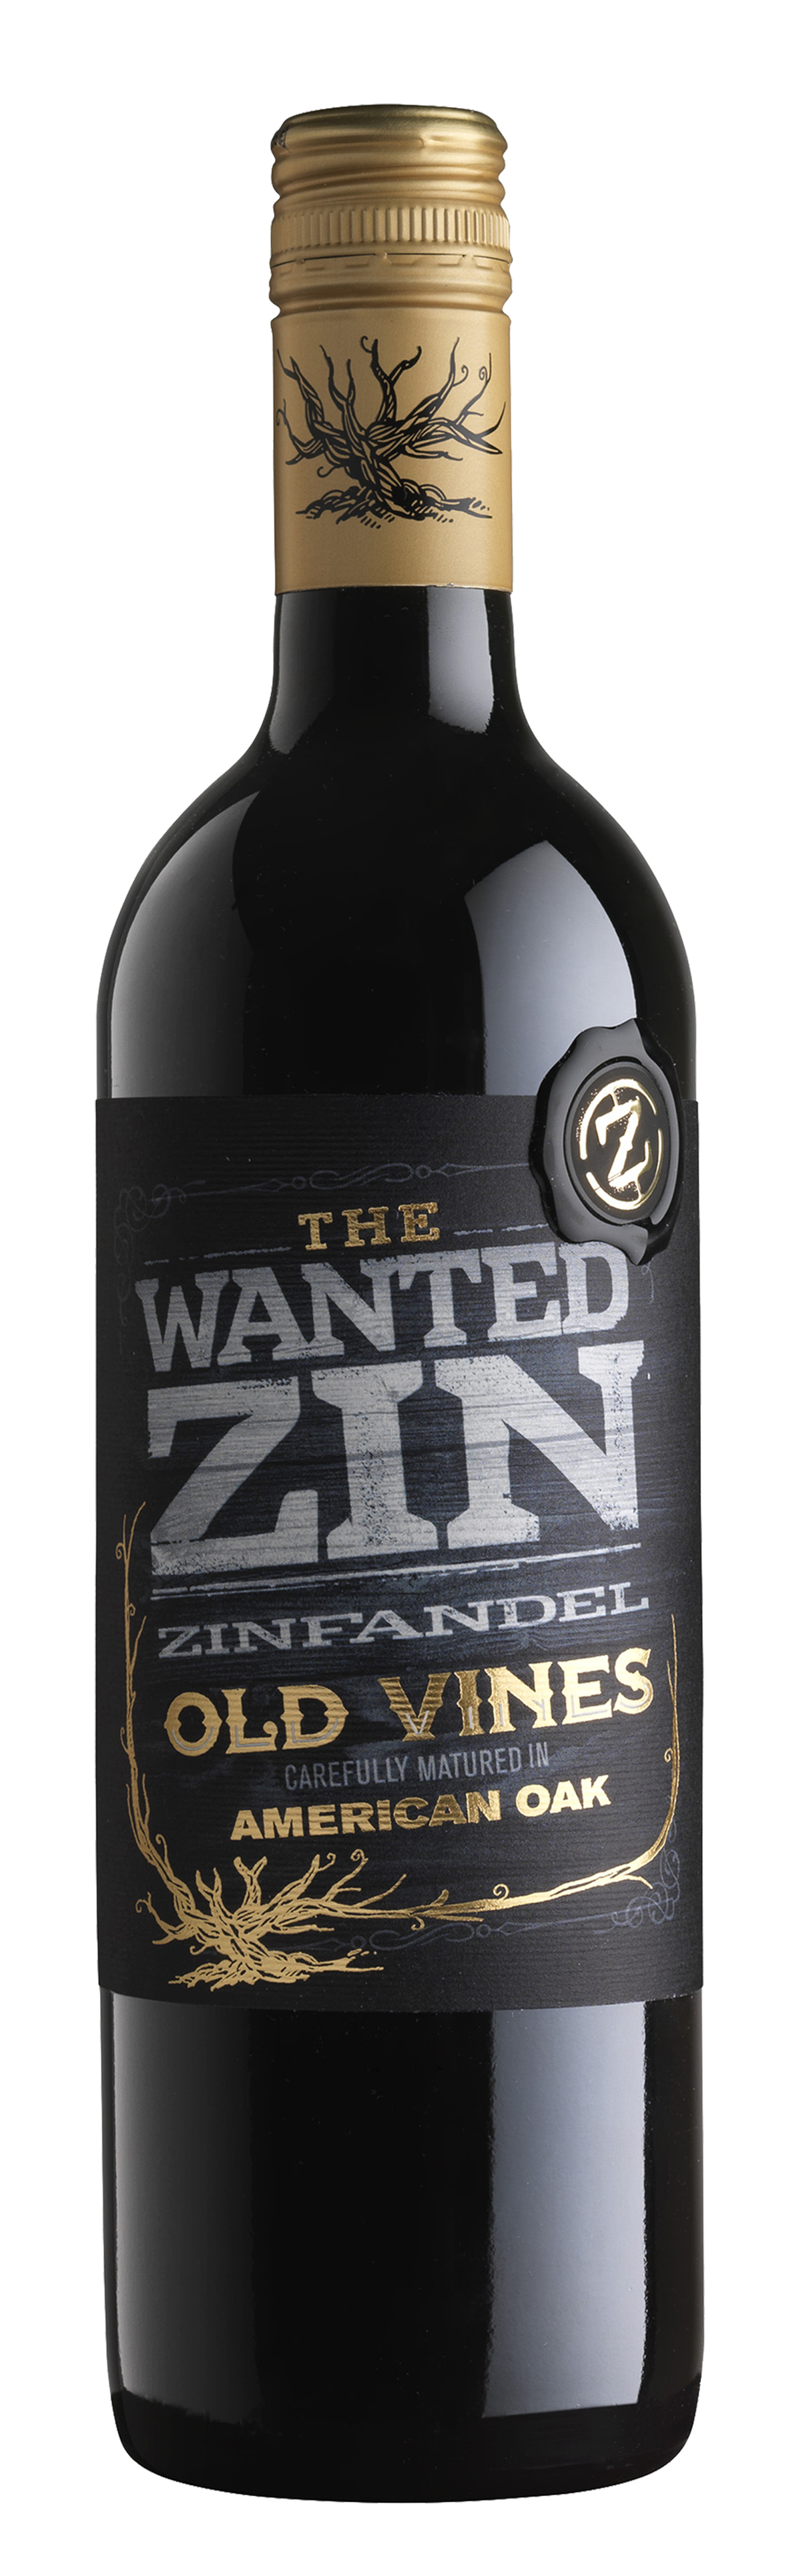 The Wanted Zin Zinfandel IGT